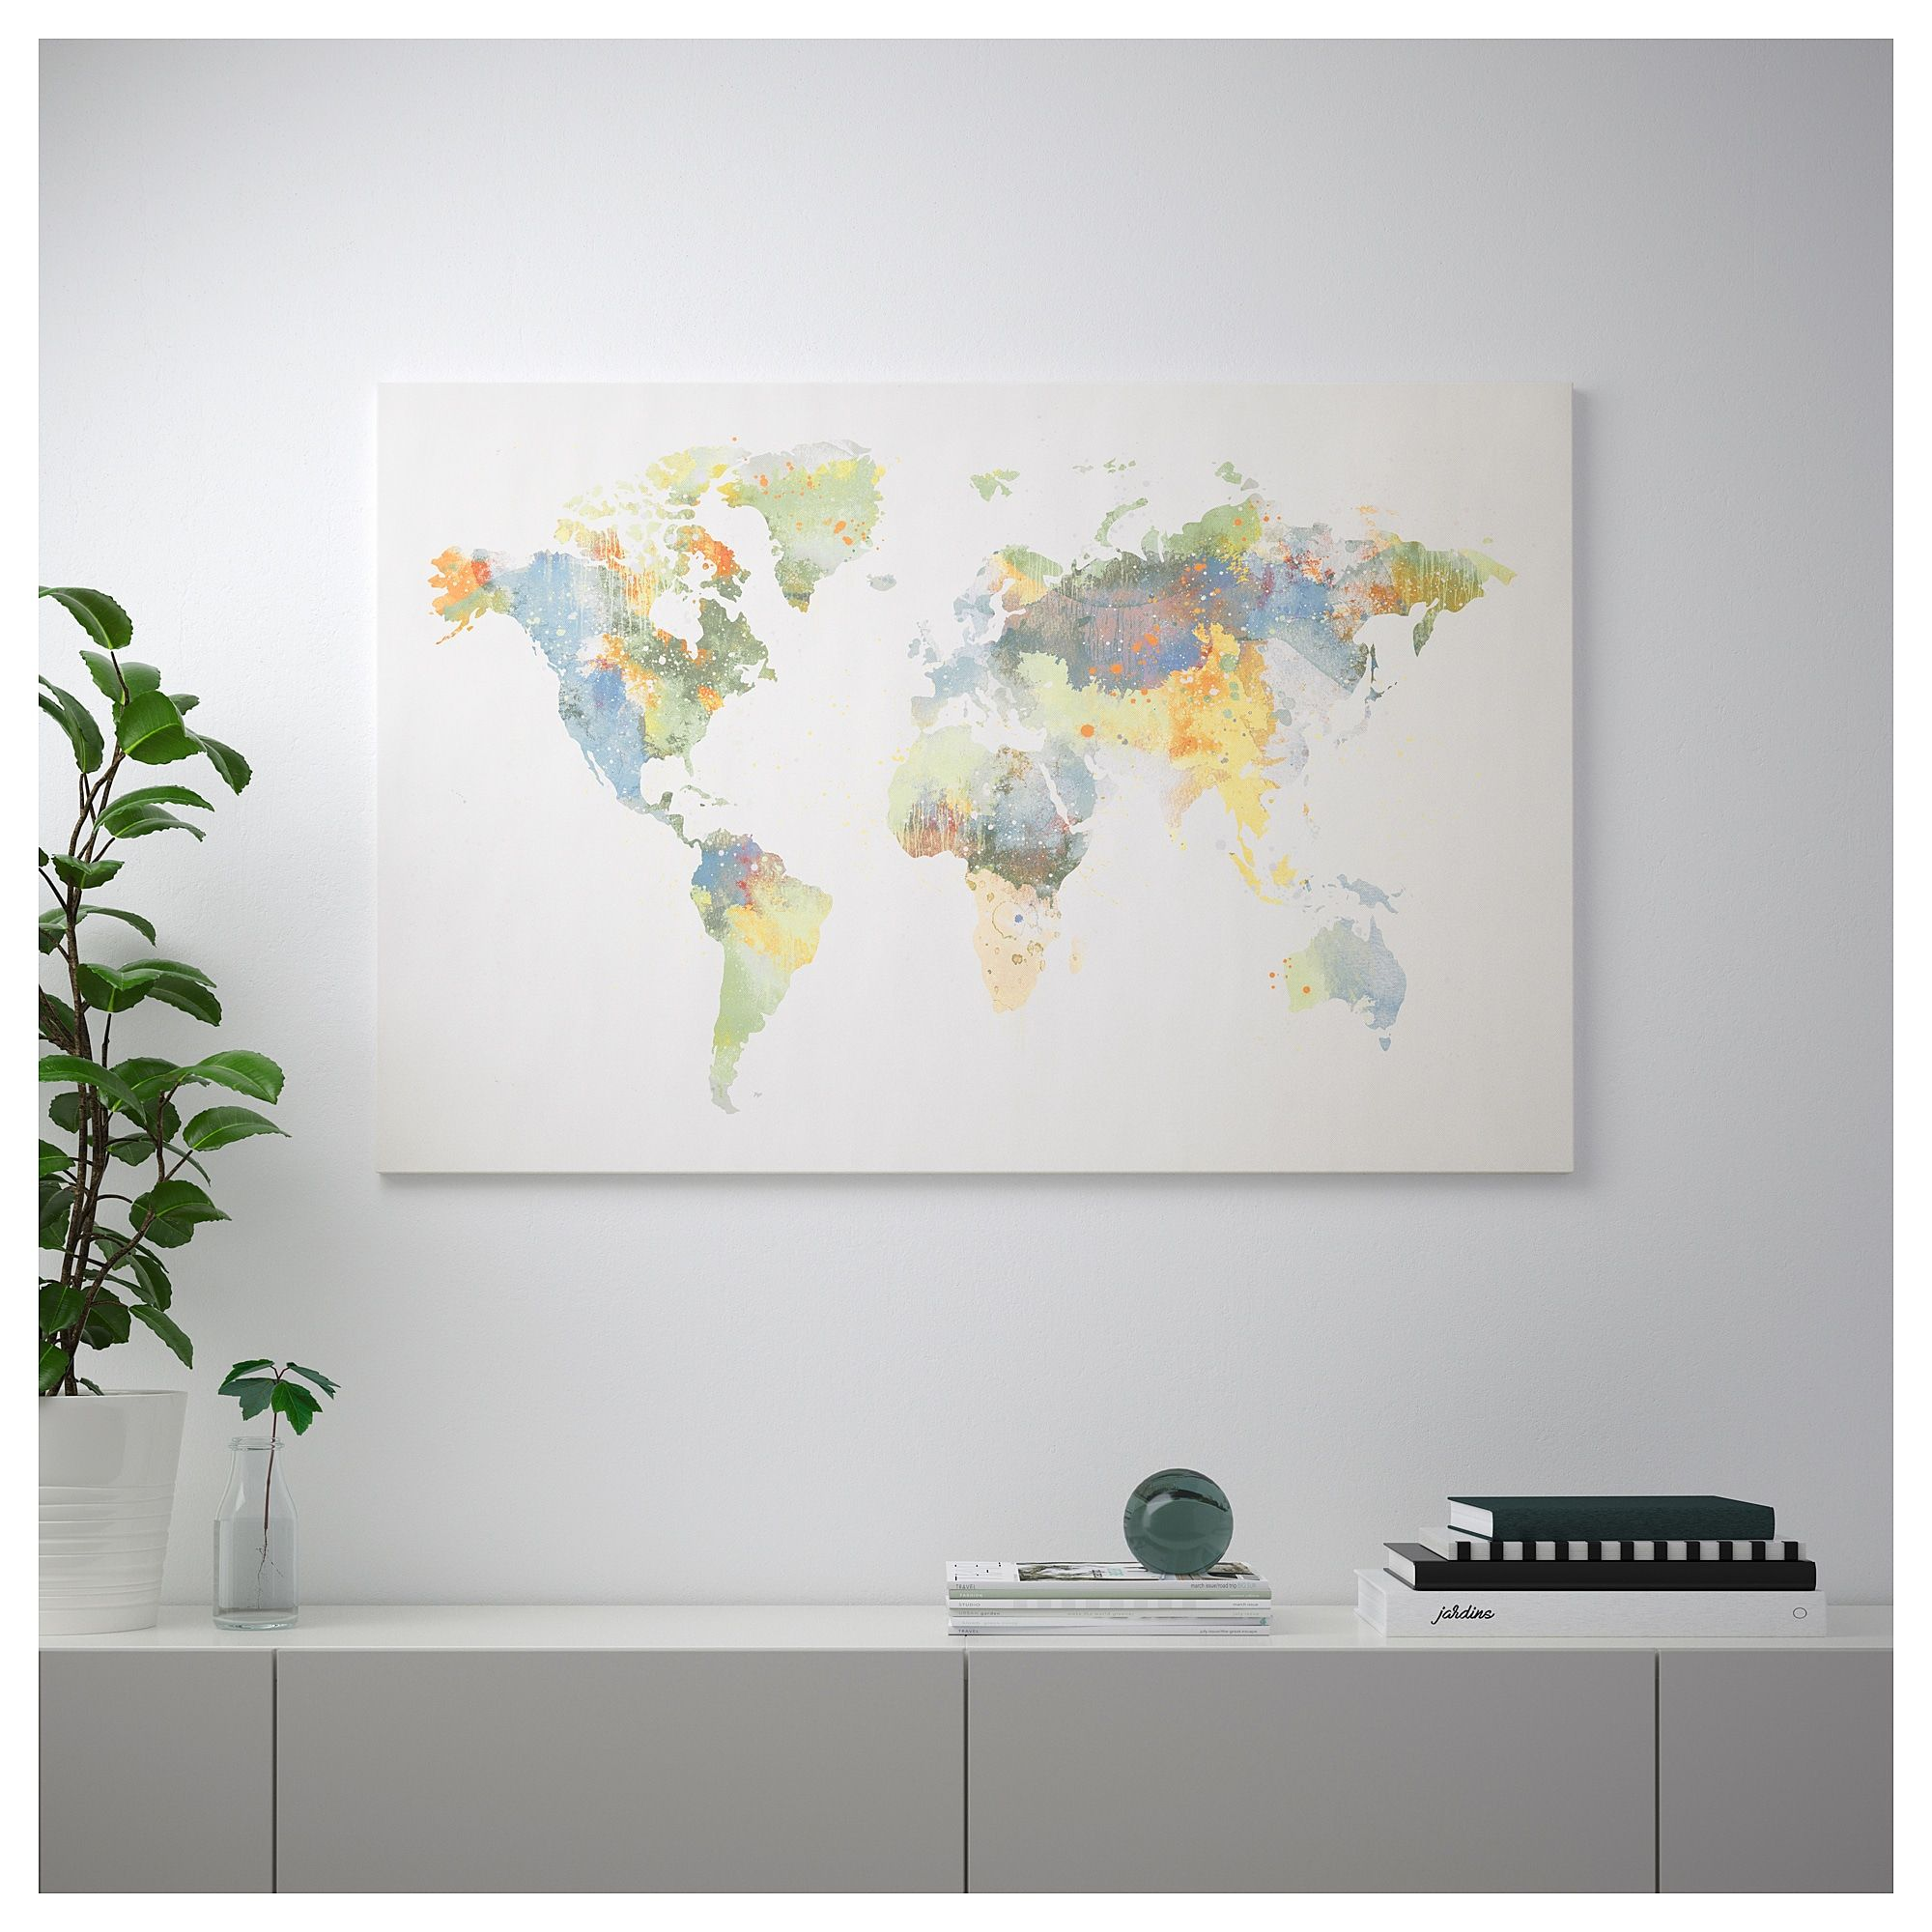 Ikea S Our World Bjorksta World Map Is Missing New Zealand